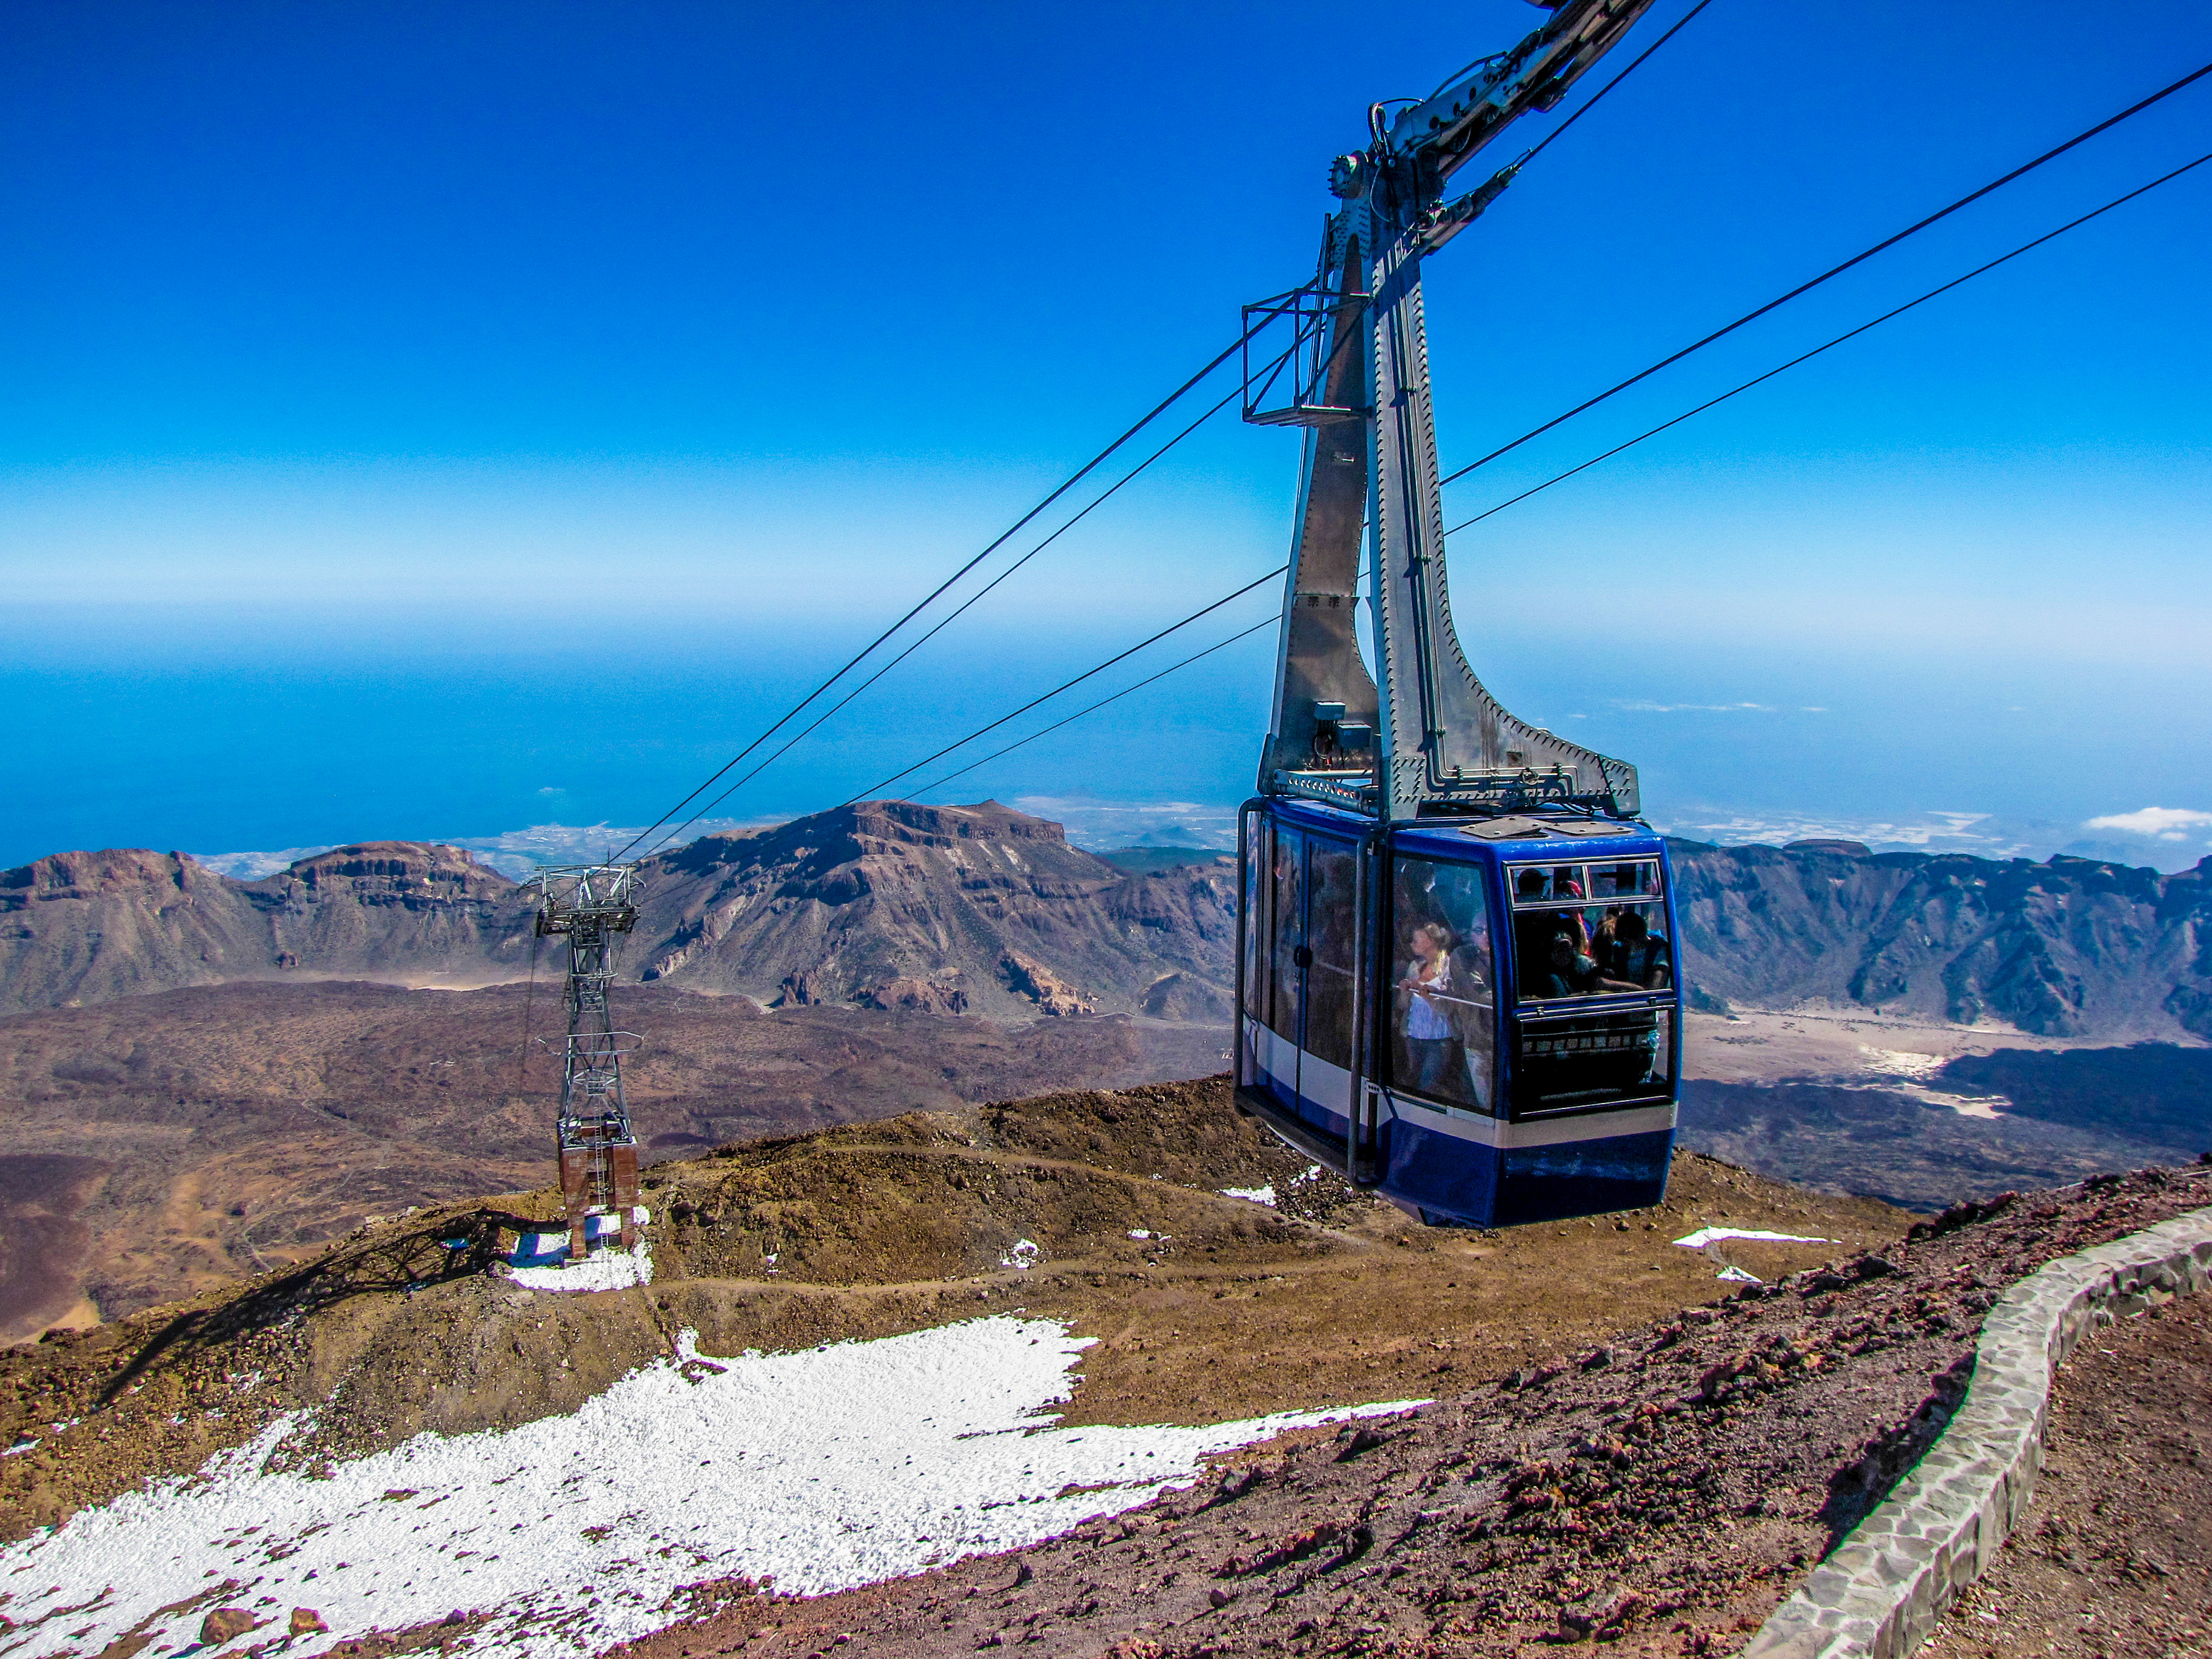 Tickets for Teide Cable Car